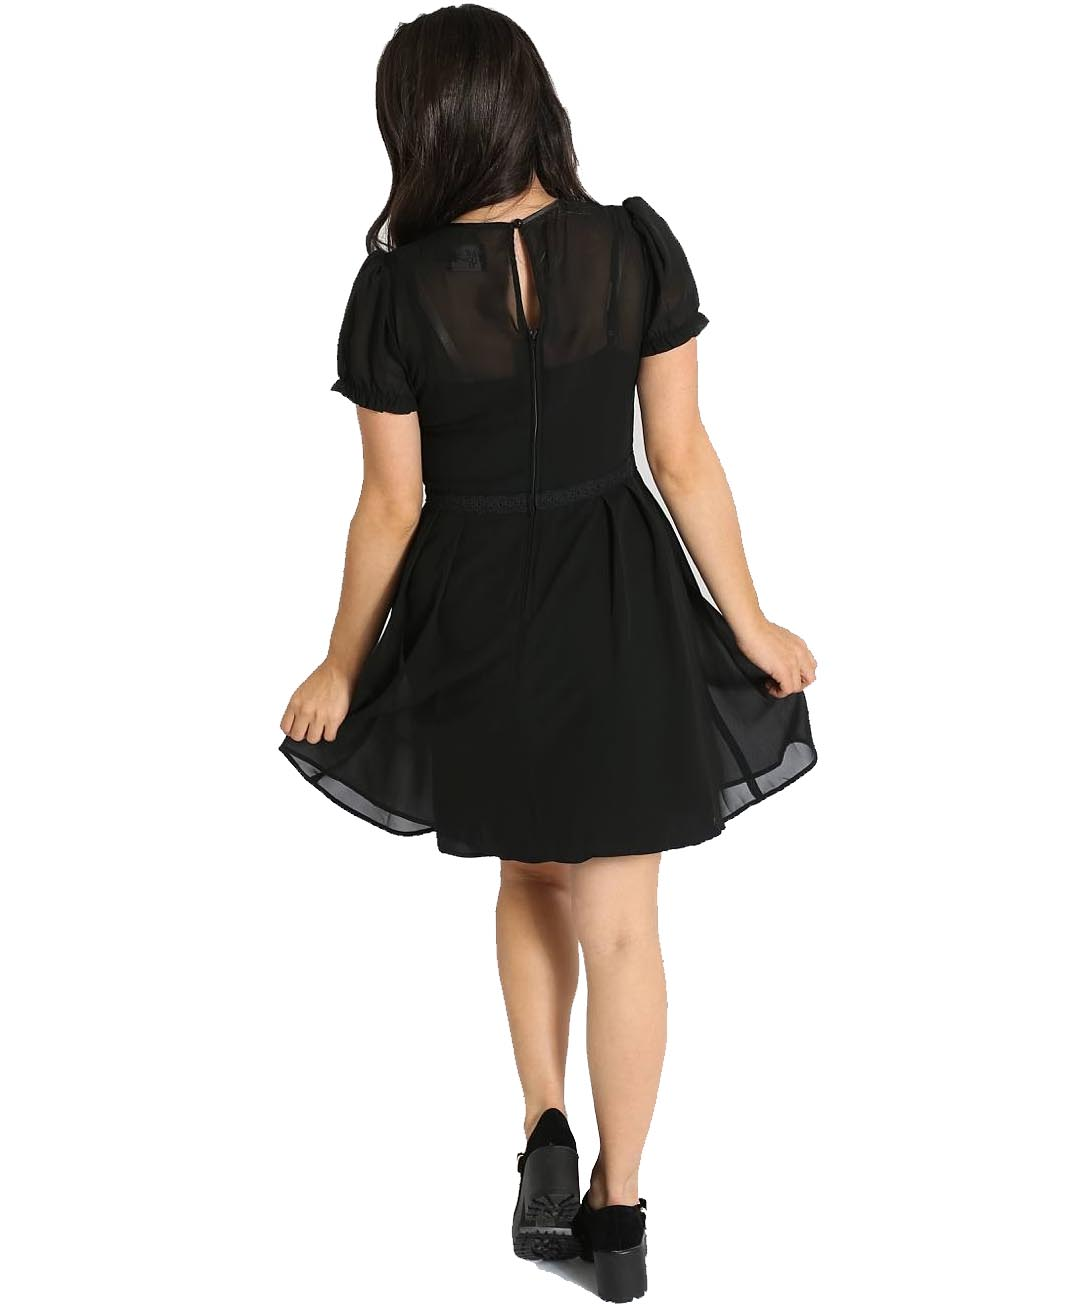 Hell-Bunny-Gothic-Black-Floaty-Mini-Dress-ARIA-Pussy-Bow-All-Sizes thumbnail 17